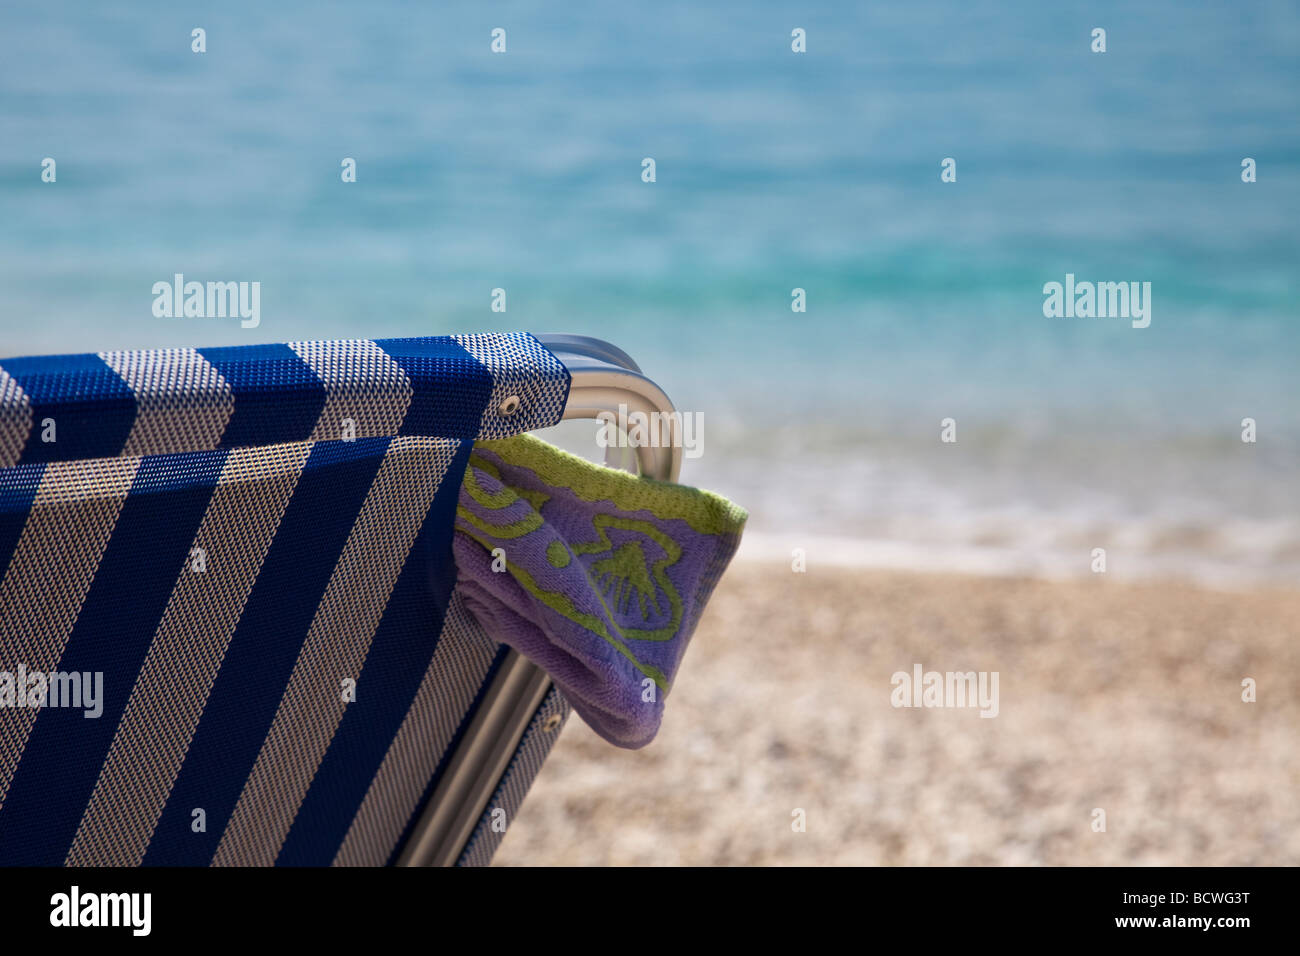 lazy days on a beach in Kefalonia, greek island in the sun, deck chair and umbrella at the ready, sand, blue sky - Stock Image